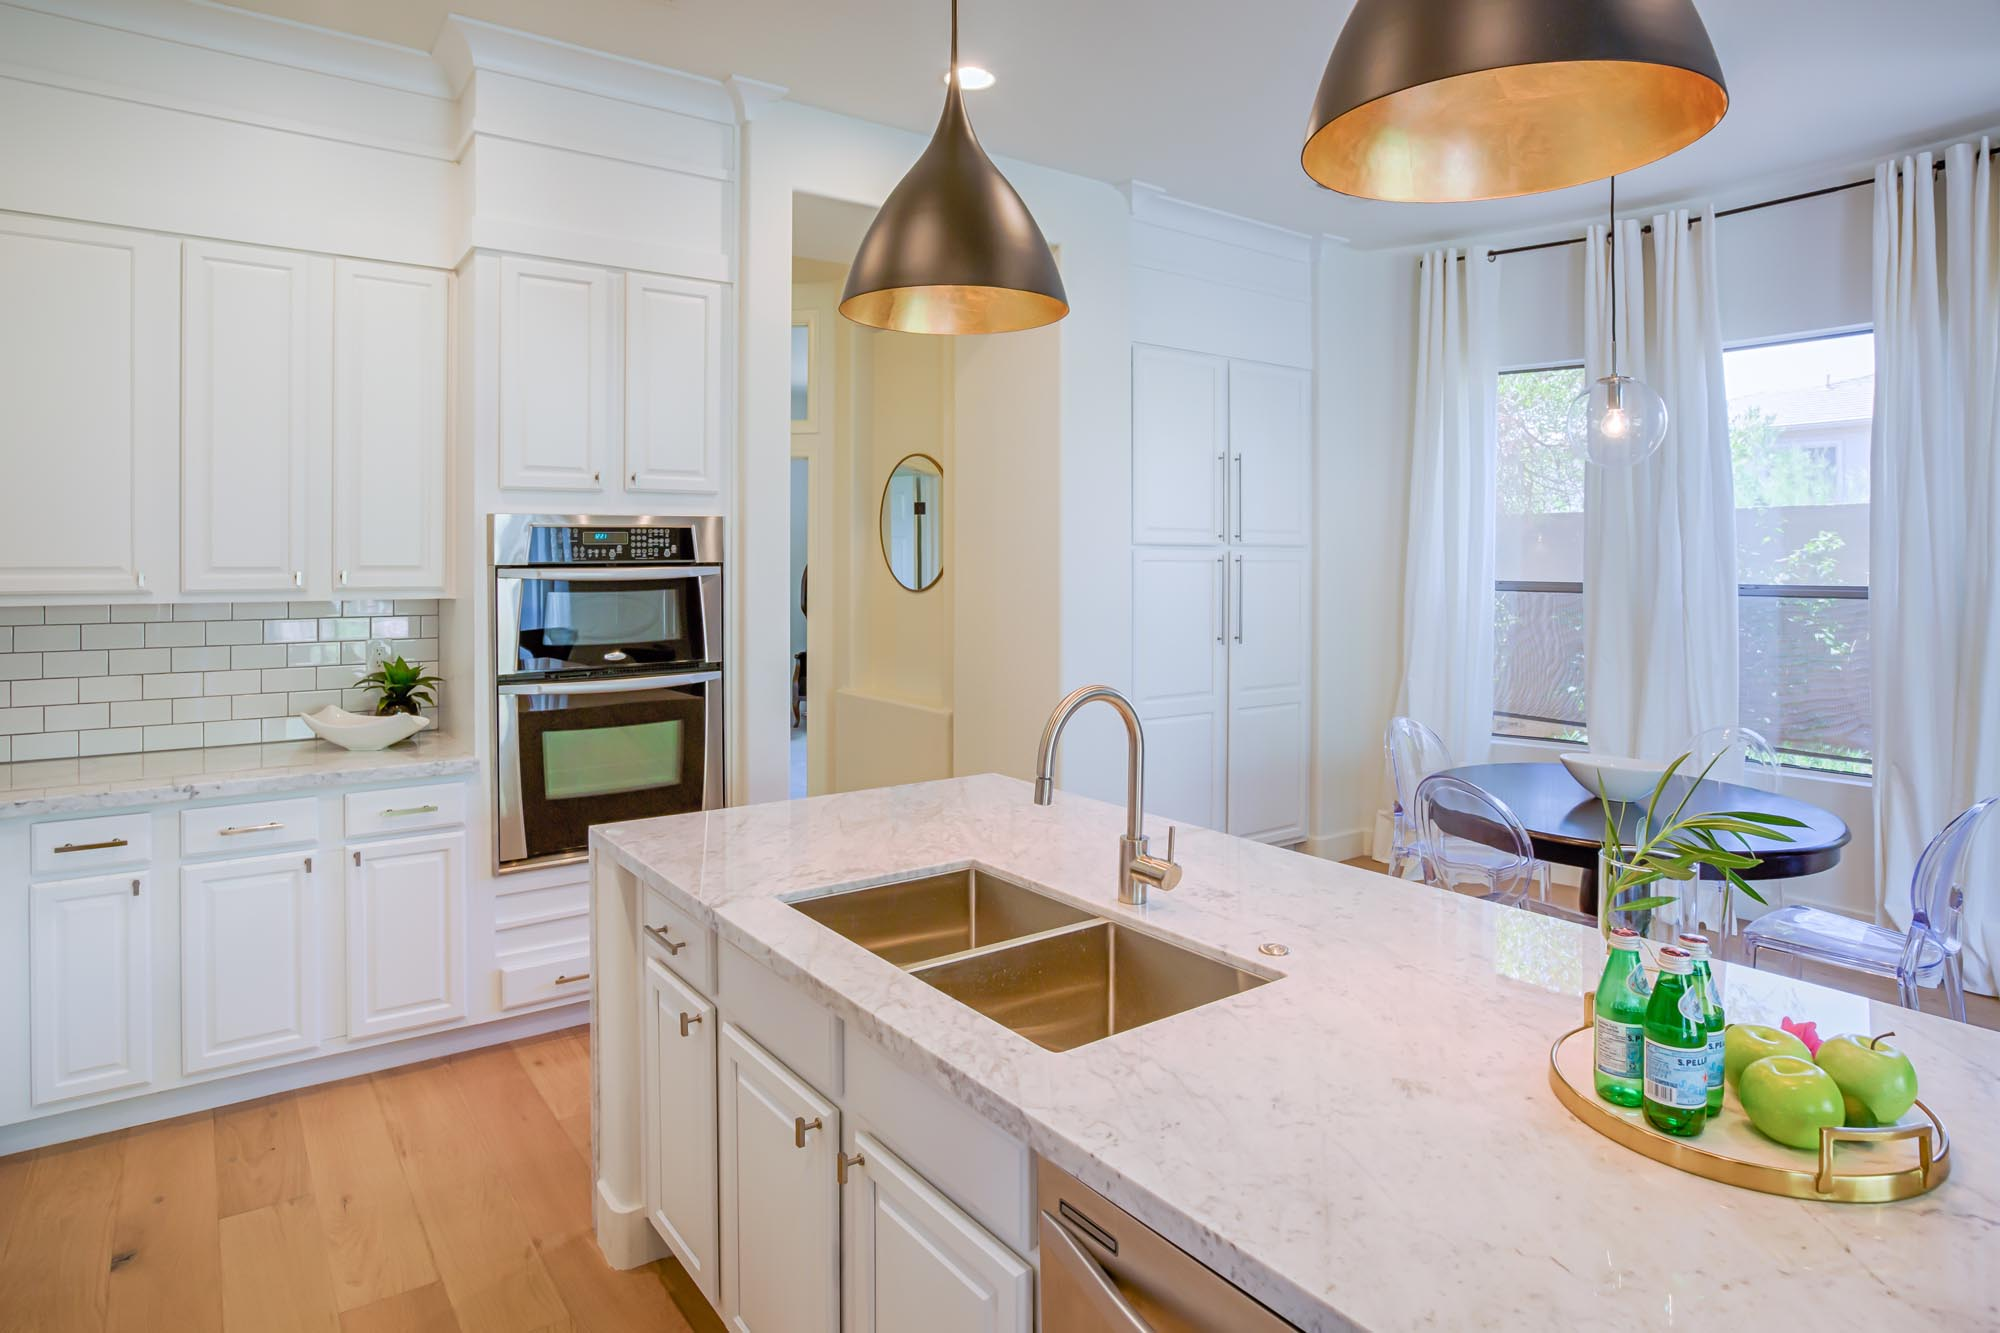 Kitchen with white cabinets and a tray of apples and drinks on island